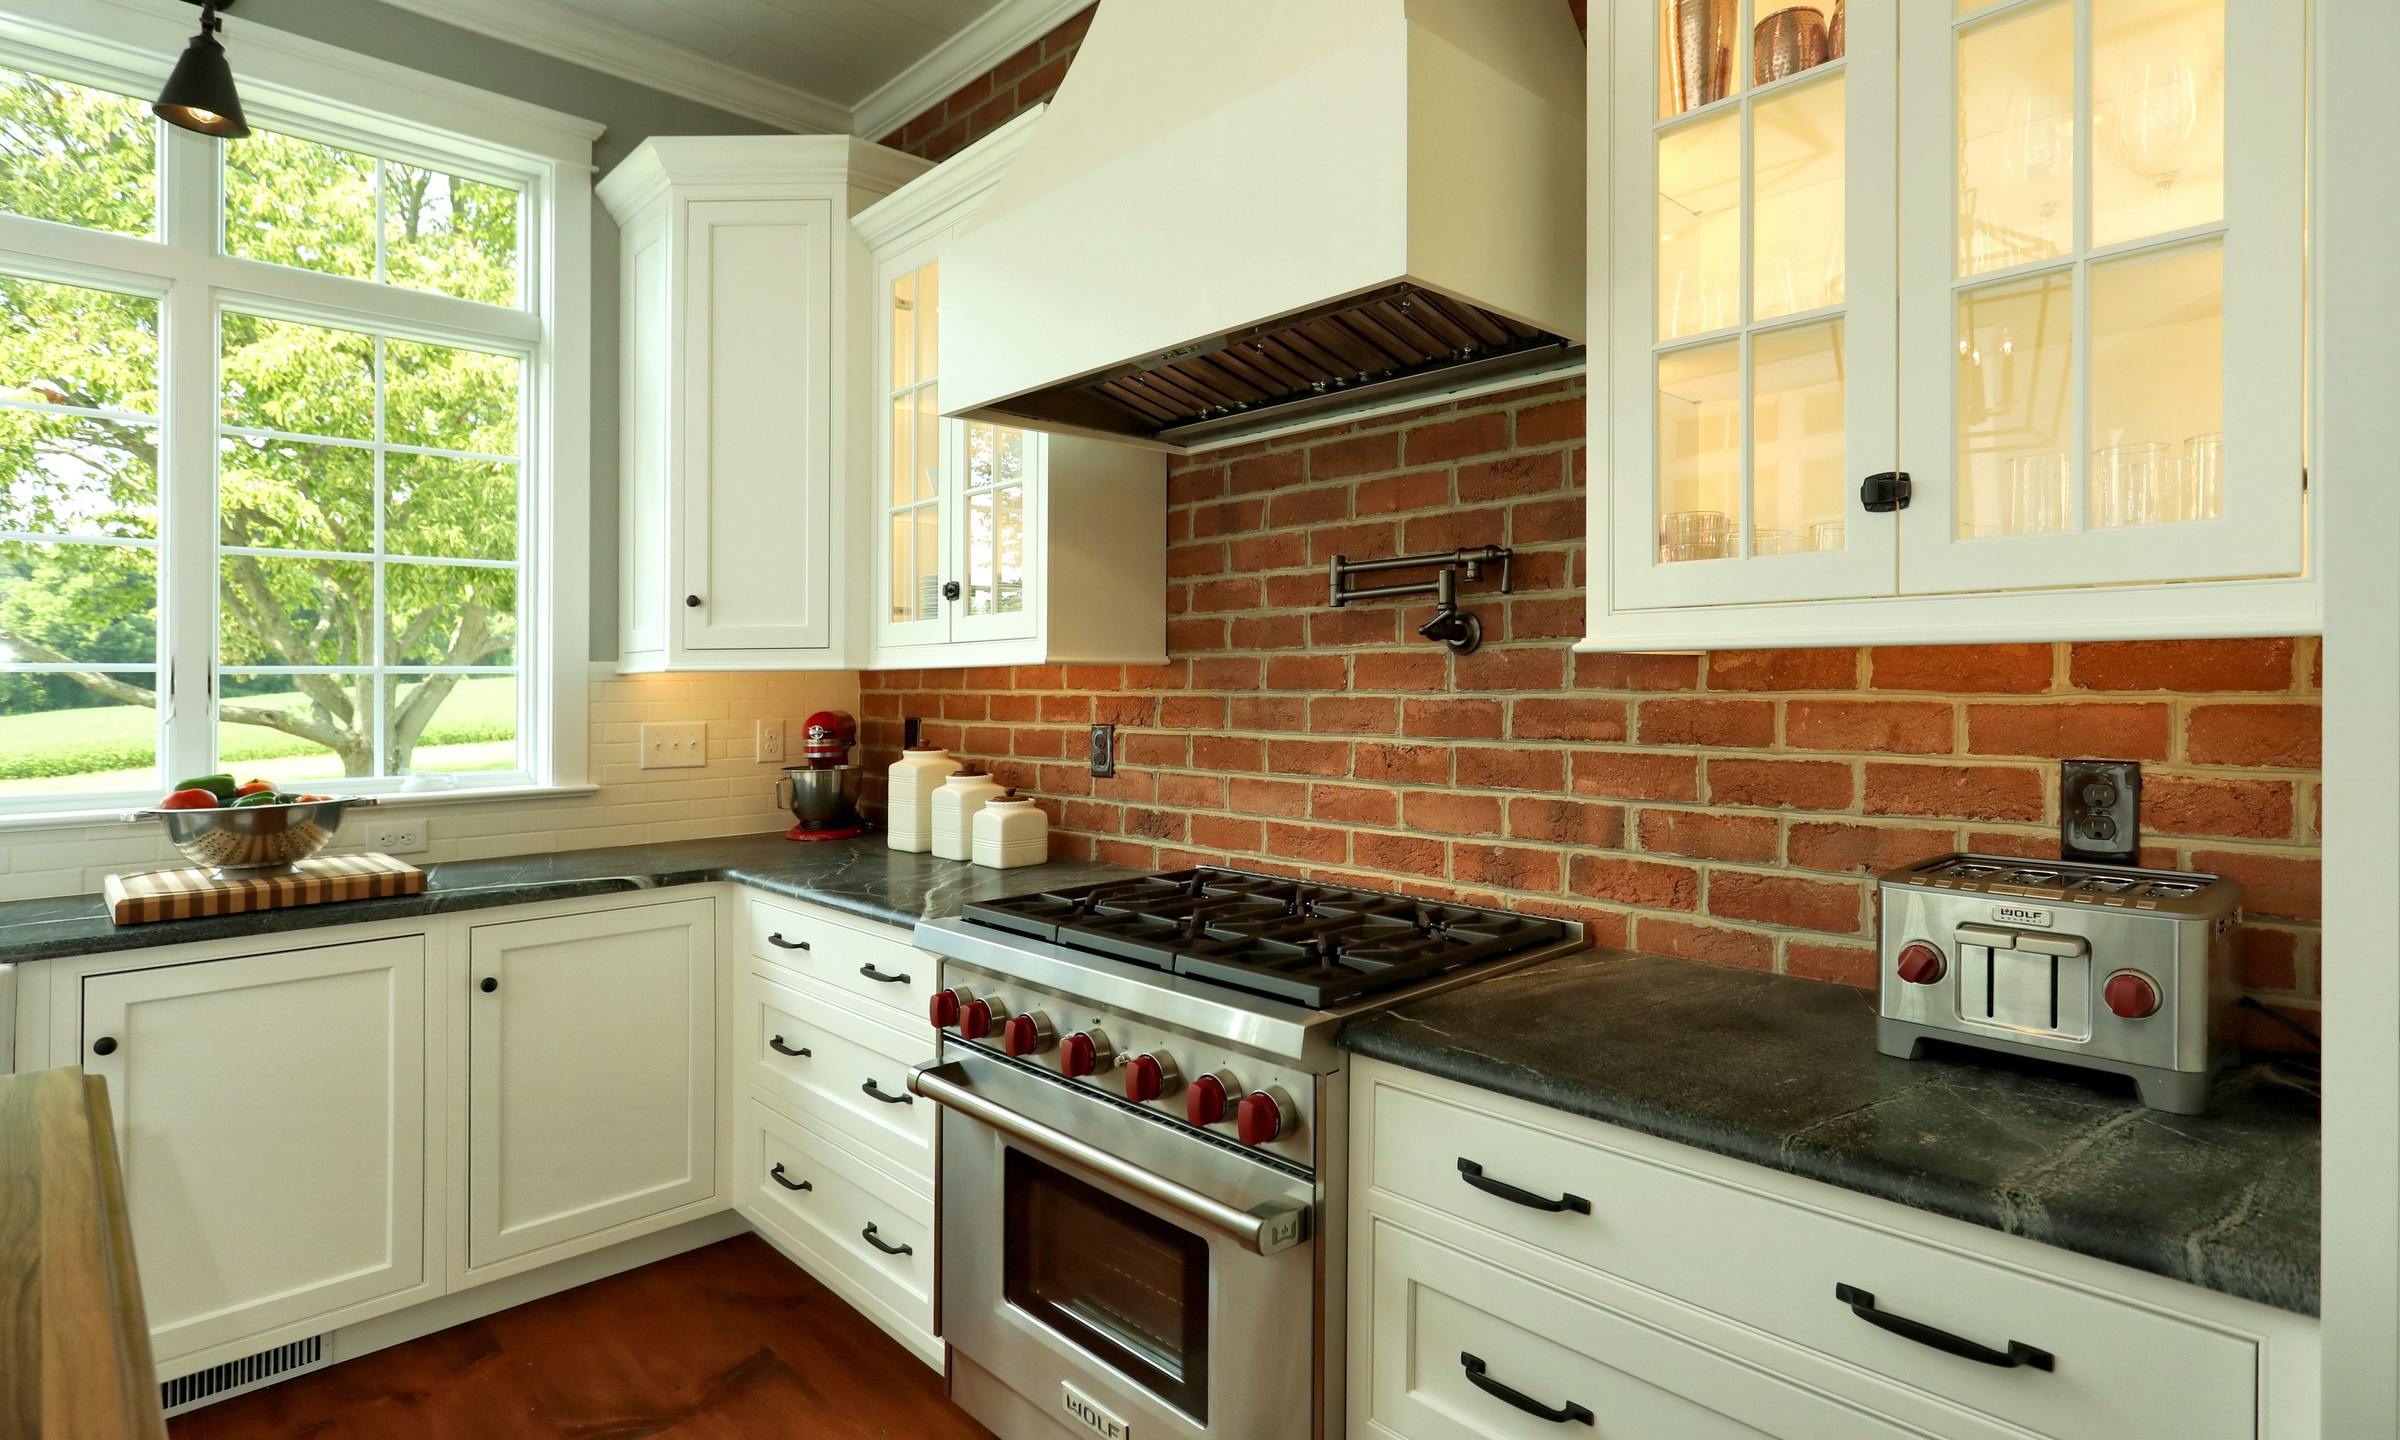 Gourmet Kitchen Remodel Photo Shoot